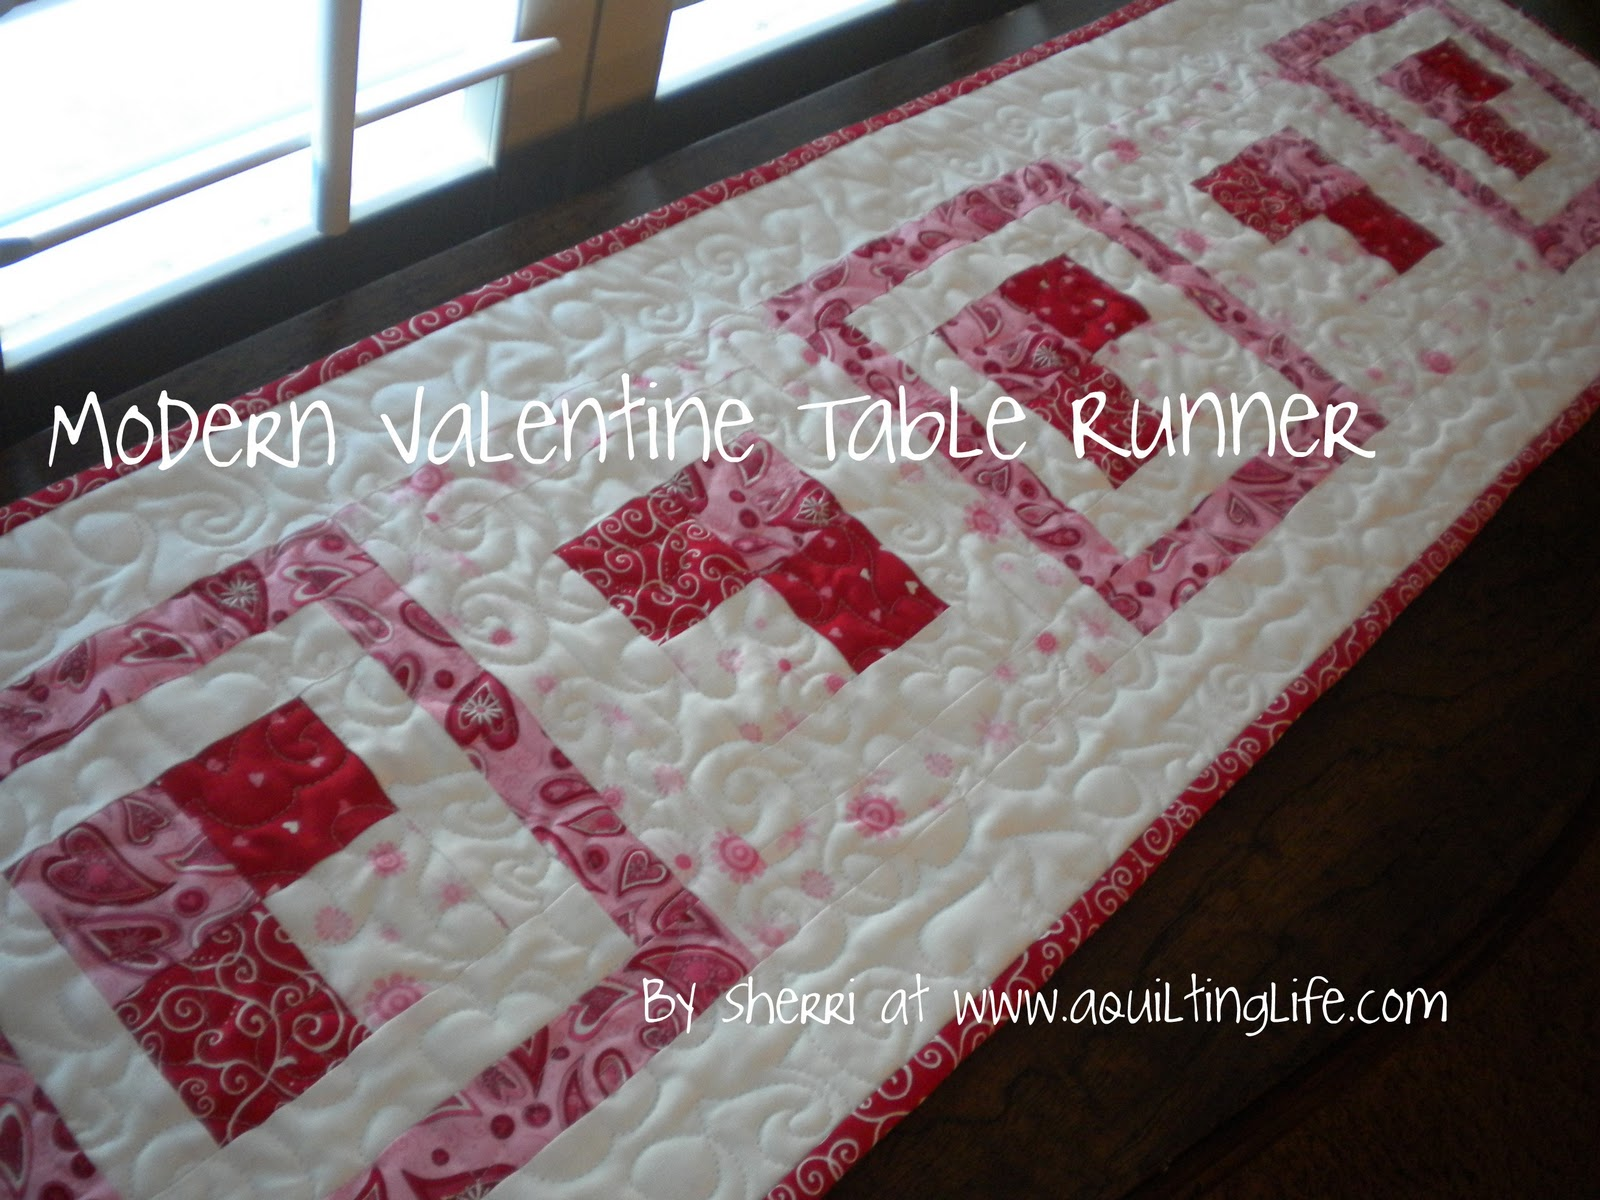 modern valentine table runner tutorial quilting life accent your focus pattern super excited share with you today part the bemine blog tour this fun design that can grey kitchen